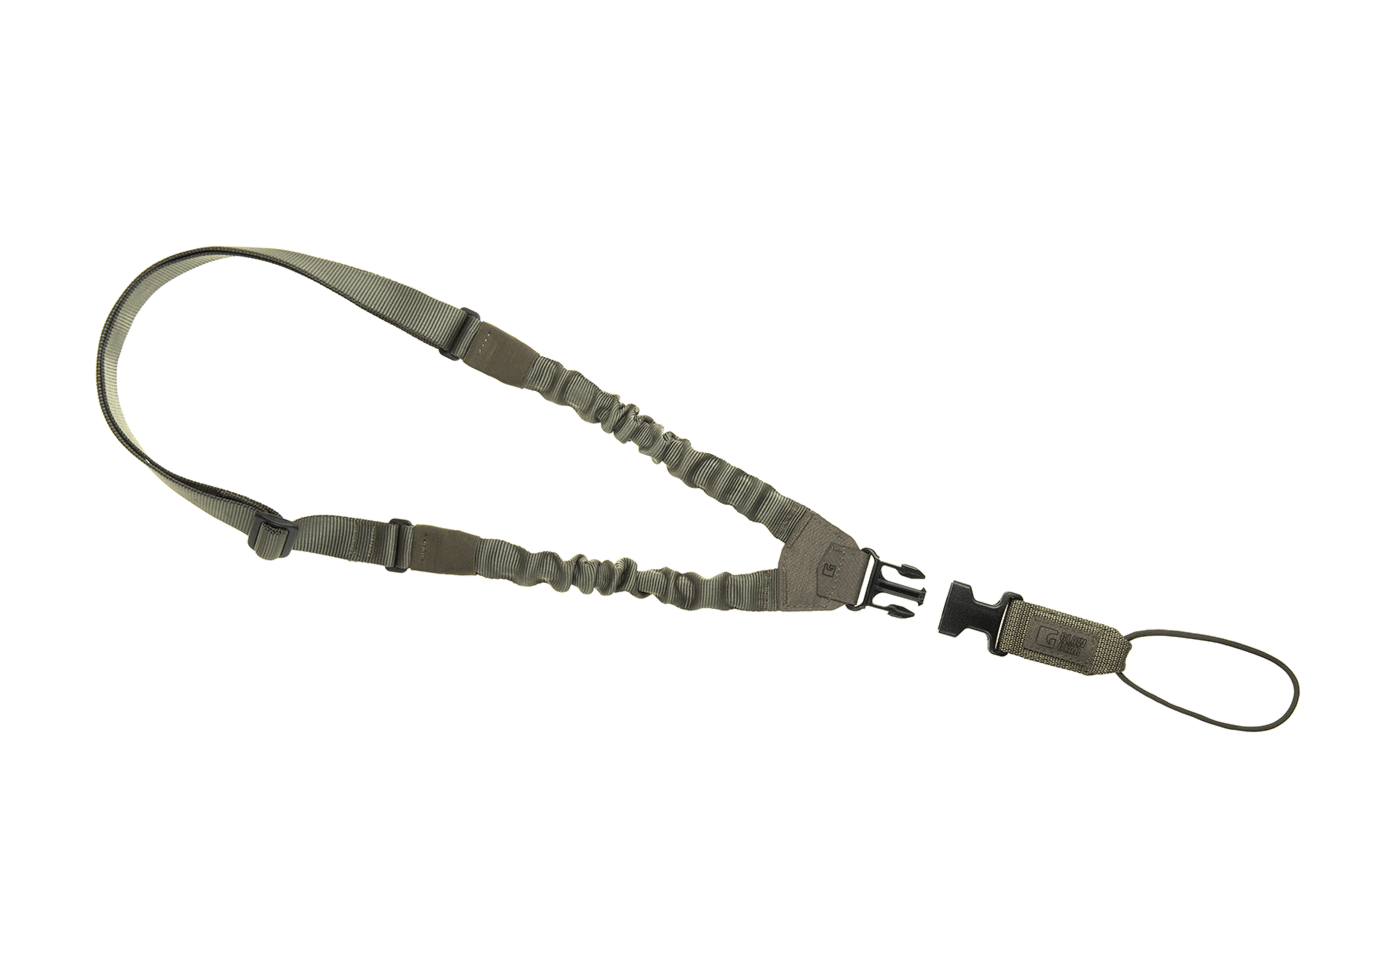 https://www.softgun.ch/shop/bilder/REALSTEEL/CLAWGEAR/CLAWGEAR-ONE-POINT-SLING-PARACORD-RAL7013_03.png